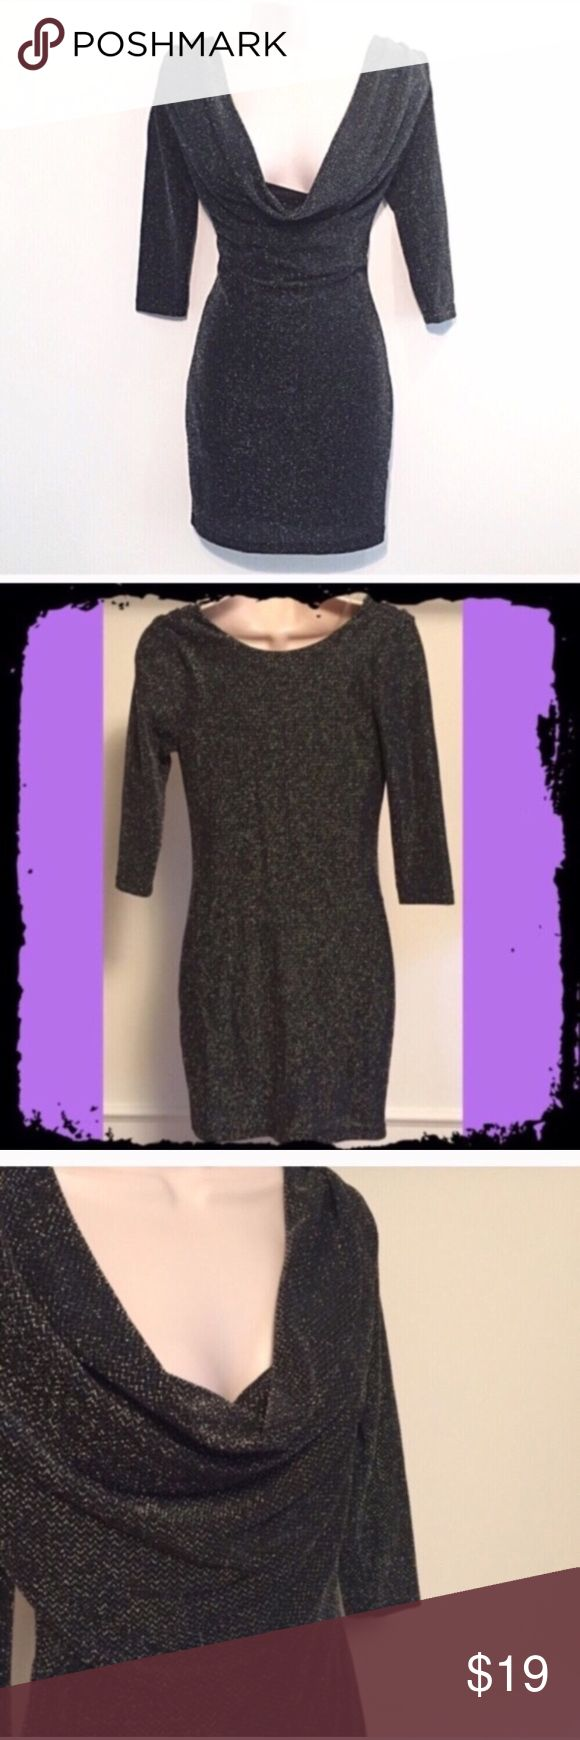 """❣BOGO 1/2 off❣🆕2 in 1 sexy silver mini dress NWOT, flawless. This dress could be worn either way- with plunge in back or front so you get 2 looks in 1 dress! Fully lined, stretchy nylon spandex blend. Measures approx 33"""" long, 34"""" bust, 28"""" waist, 12"""" sleeves. Size small. ✖️I do NOT MODEL✖️ 🔴Bundle to save! 🔴NO TRADES. 🔴REASONABLE offers welcome via offer button. Smoke free home. Fast shipping! boutique Dresses Mini"""